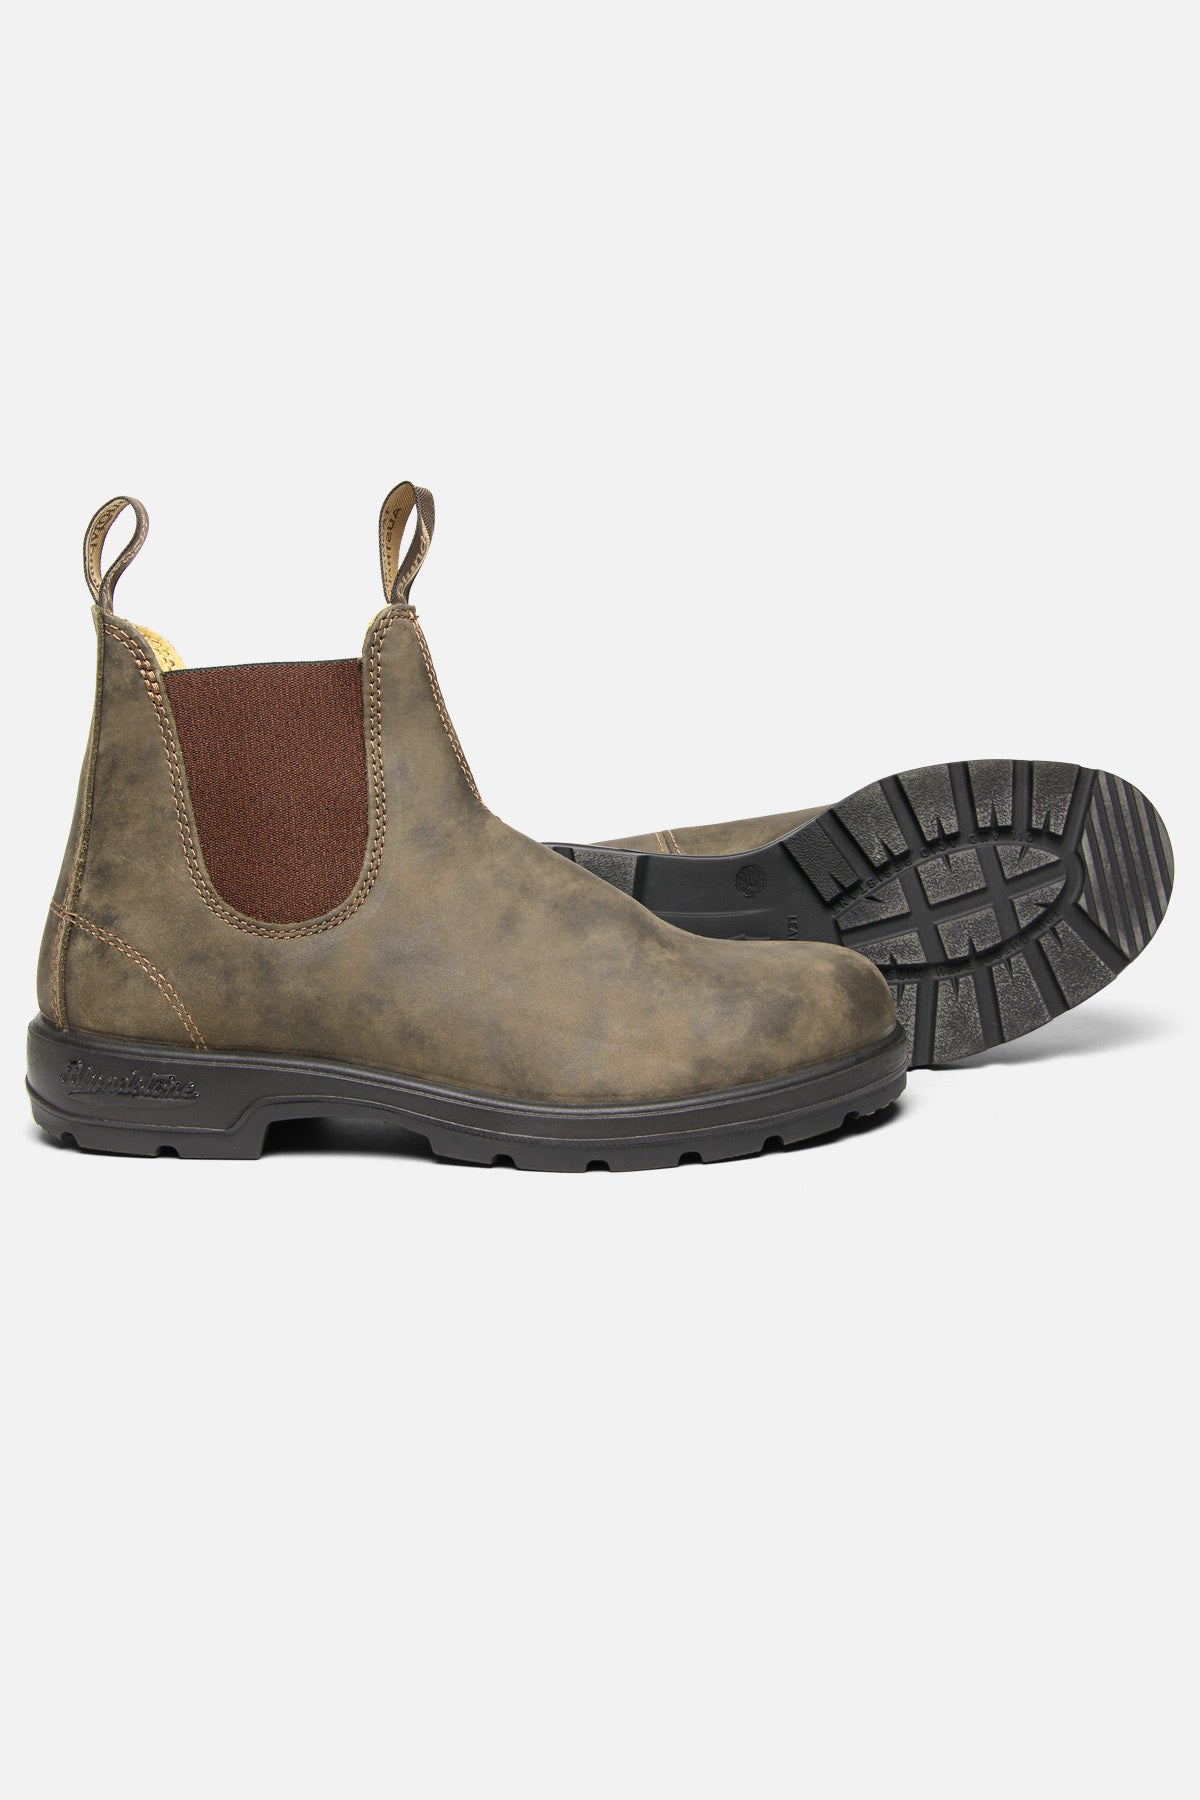 BLUNDSTONE 550 IN RUSTIC BROWN - Fortune Goods